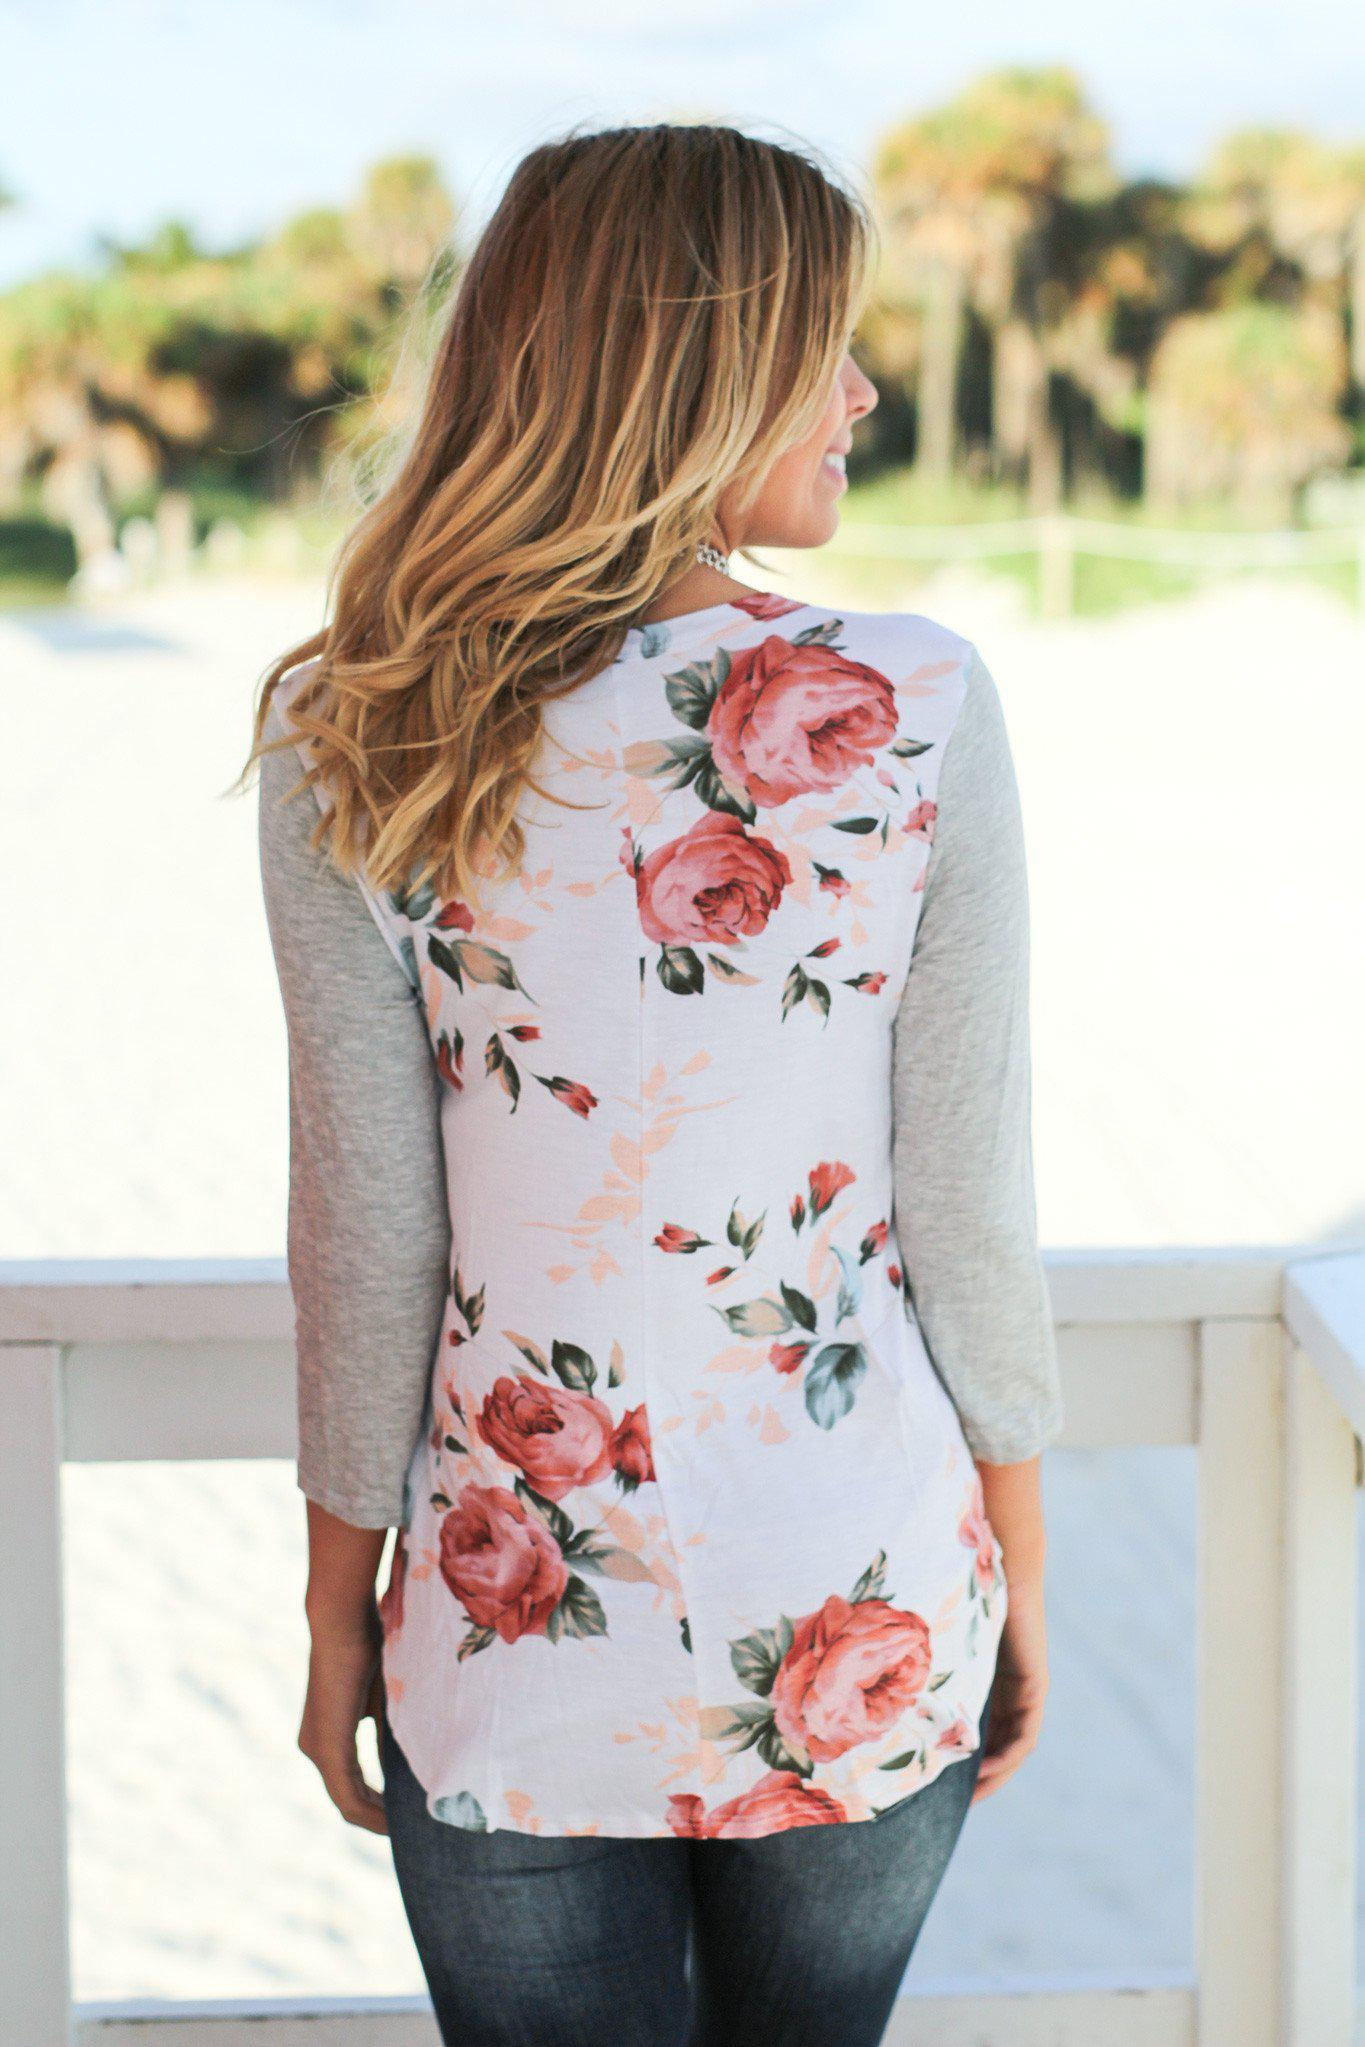 Floral Top with Gray Sleeves